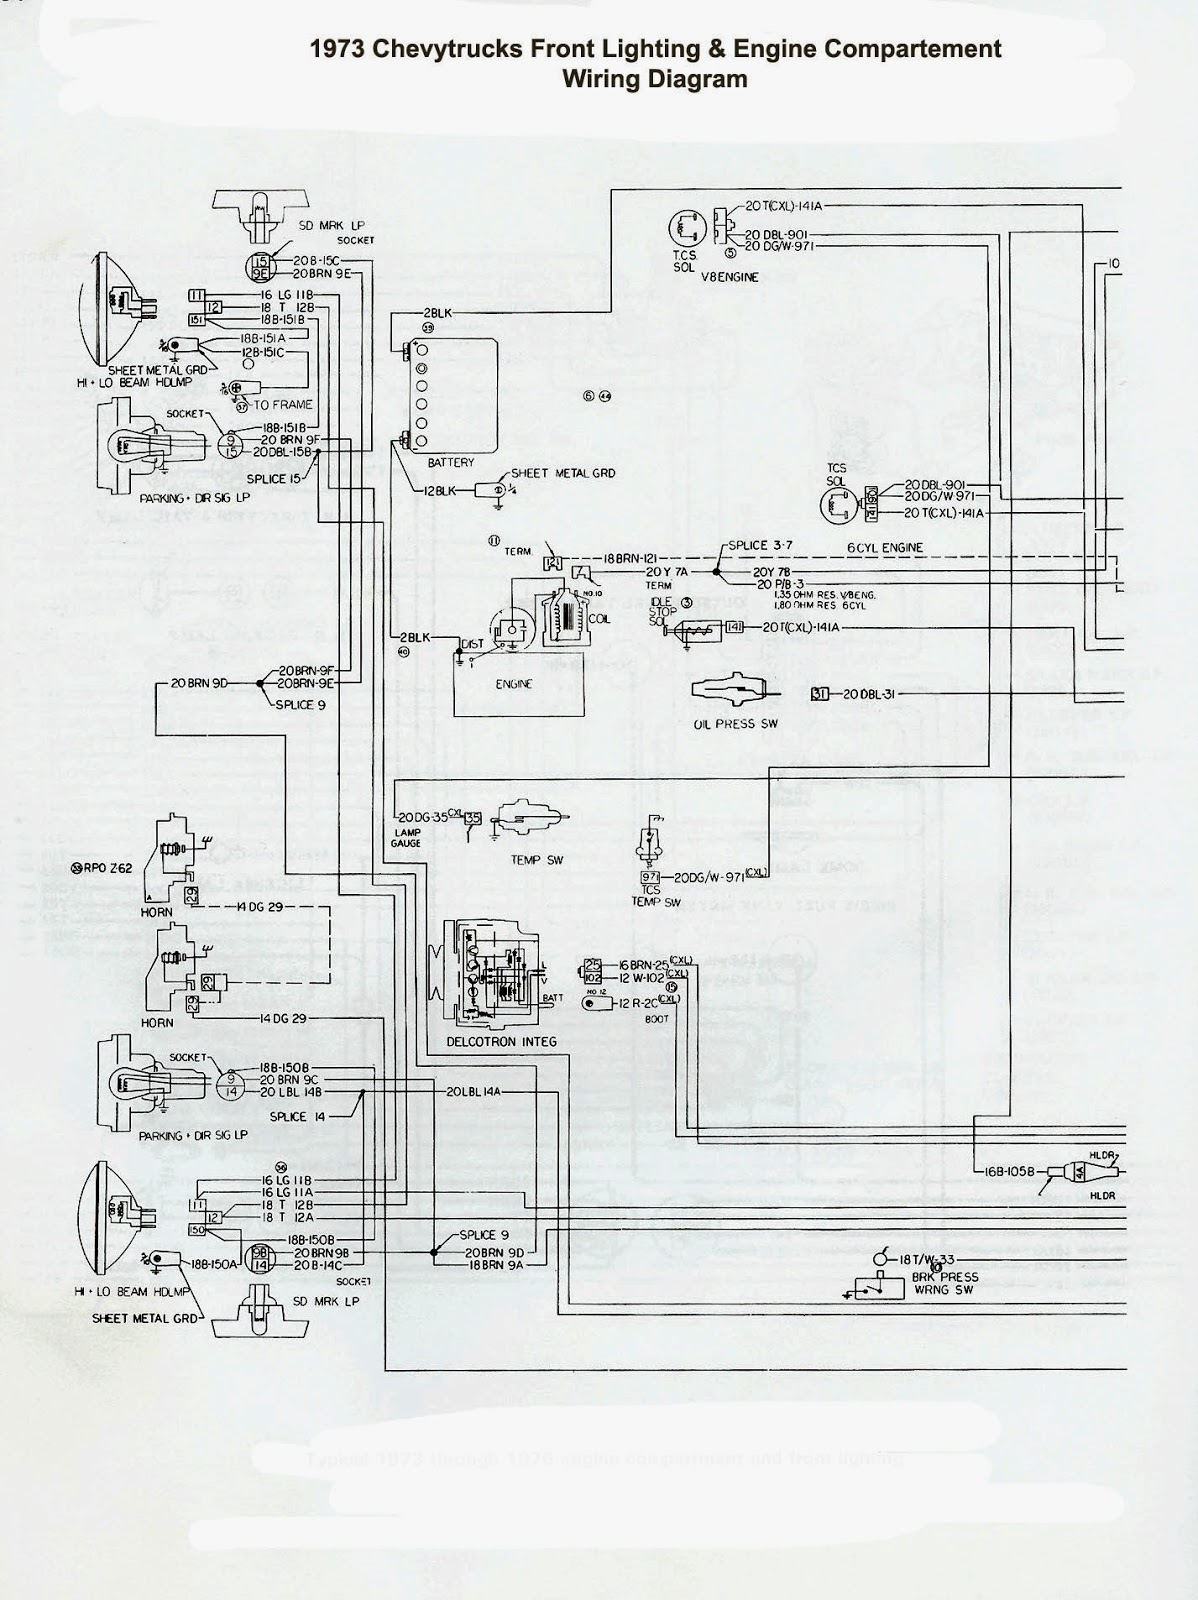 1978 Camaro Headlight Wiring Diagram 36 Images Engine N Frontlight73 76 Eng Frt Light Copy Electrical Winding Diagrams 1973